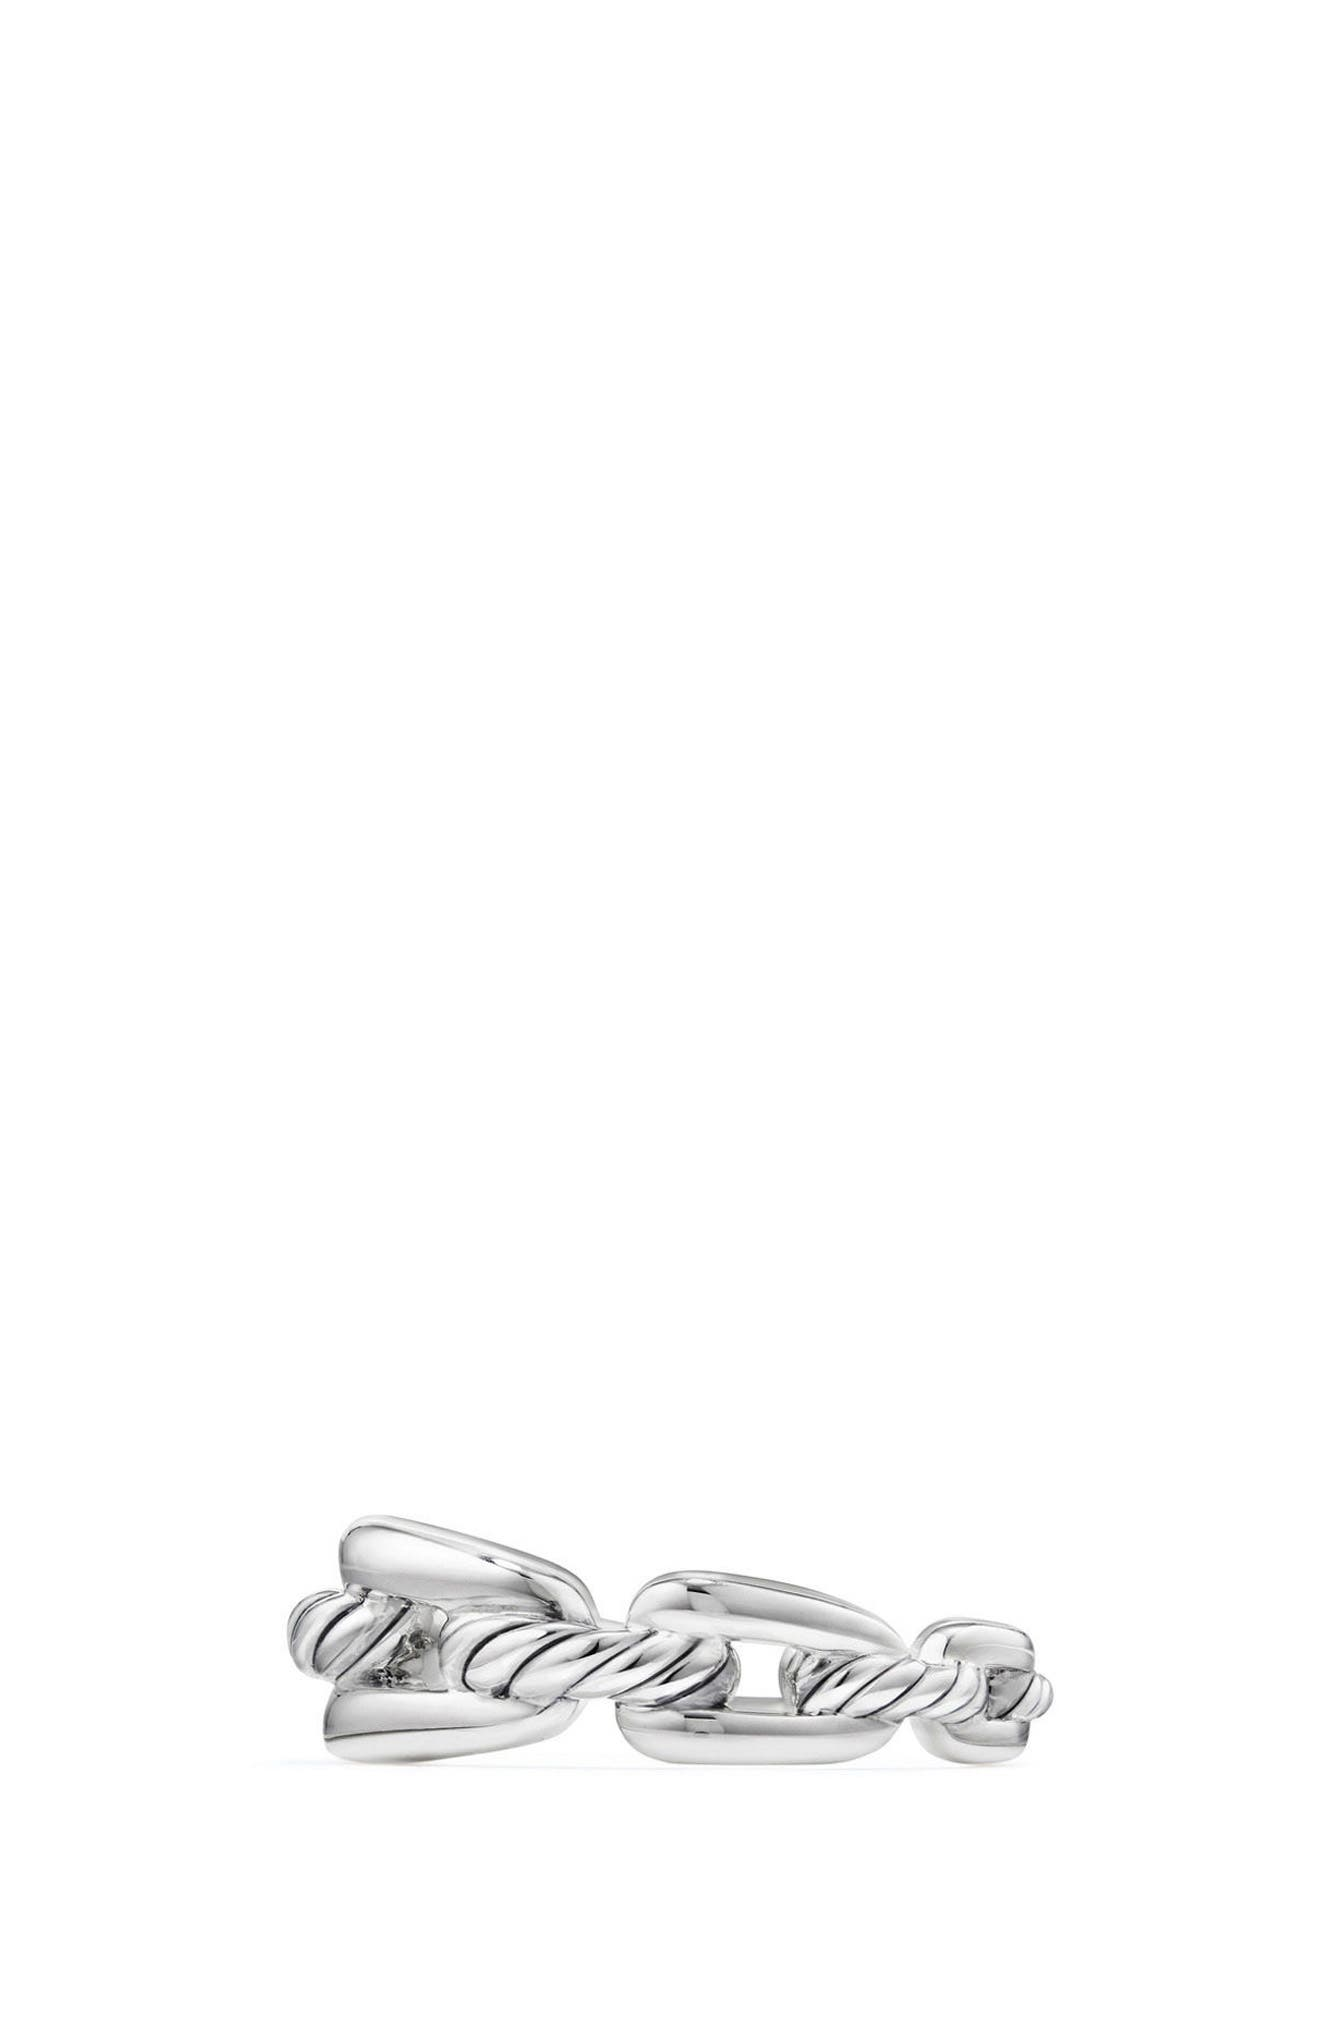 Wellesley Chain Link Ring with Diamonds,                             Alternate thumbnail 2, color,                             SILVER